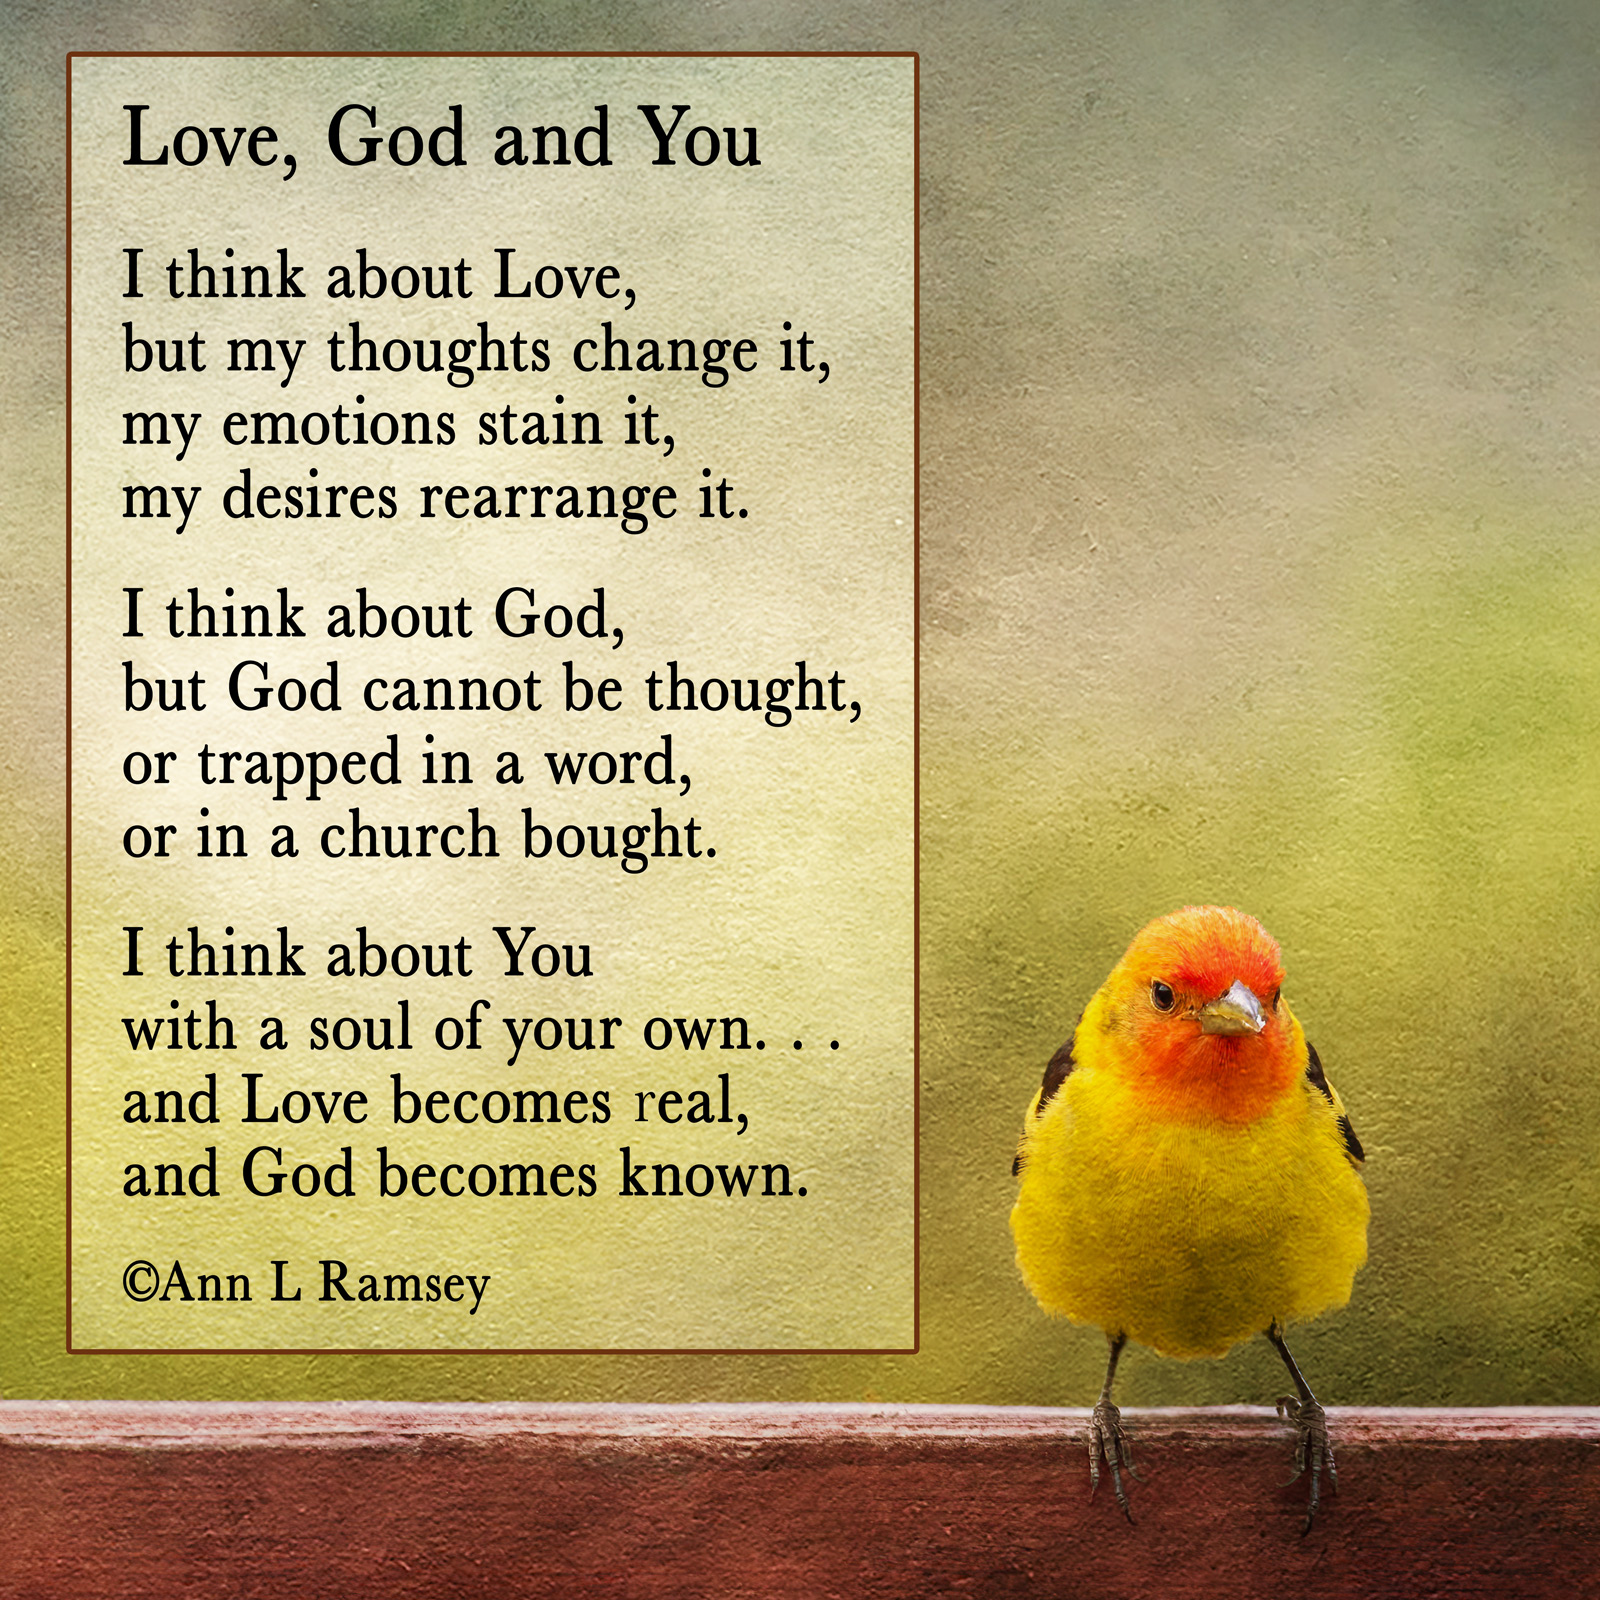 Love, God and You